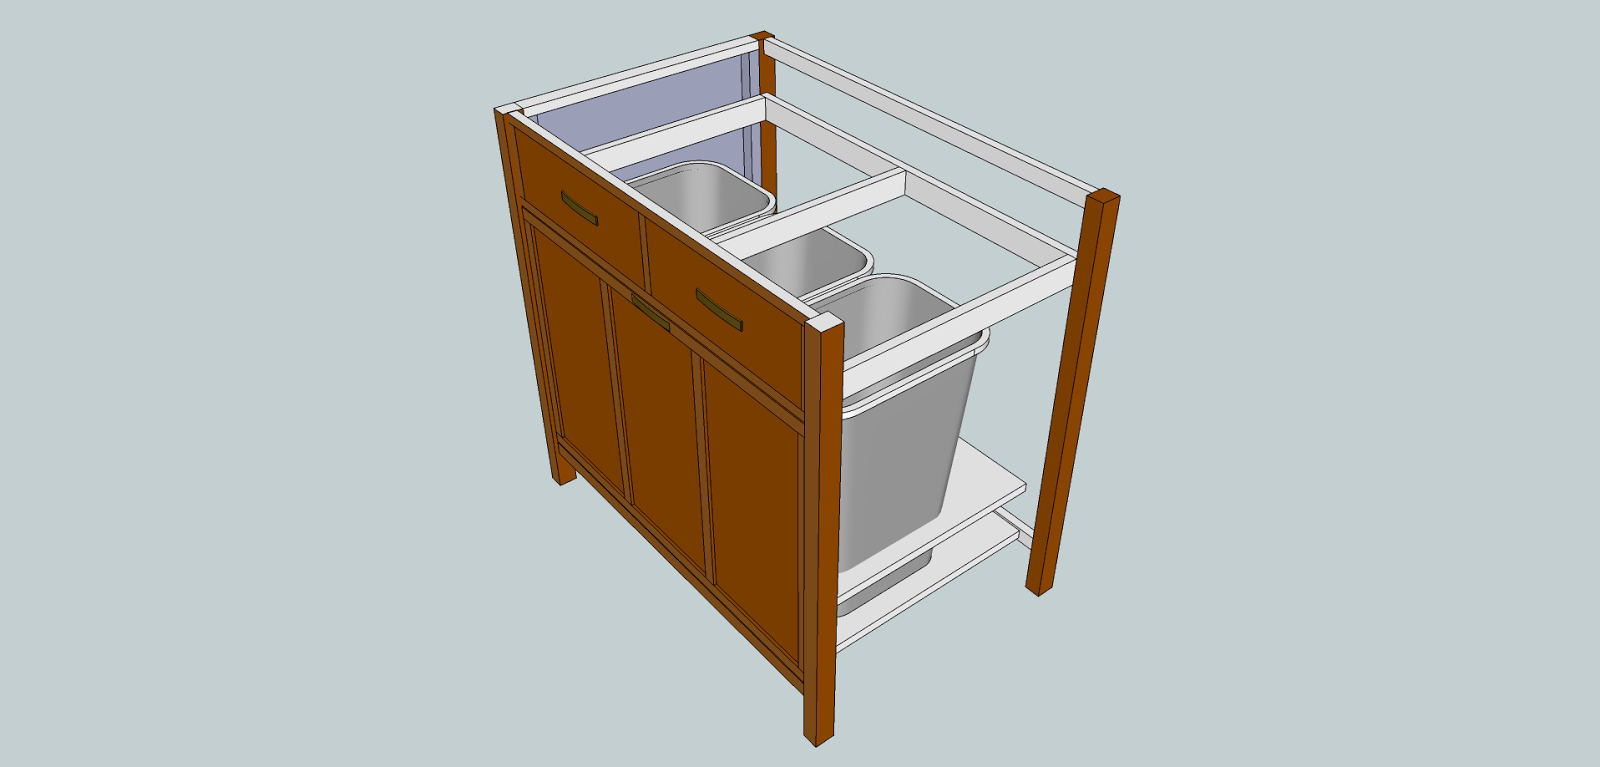 fine wood finishing sketchup and cabinet design